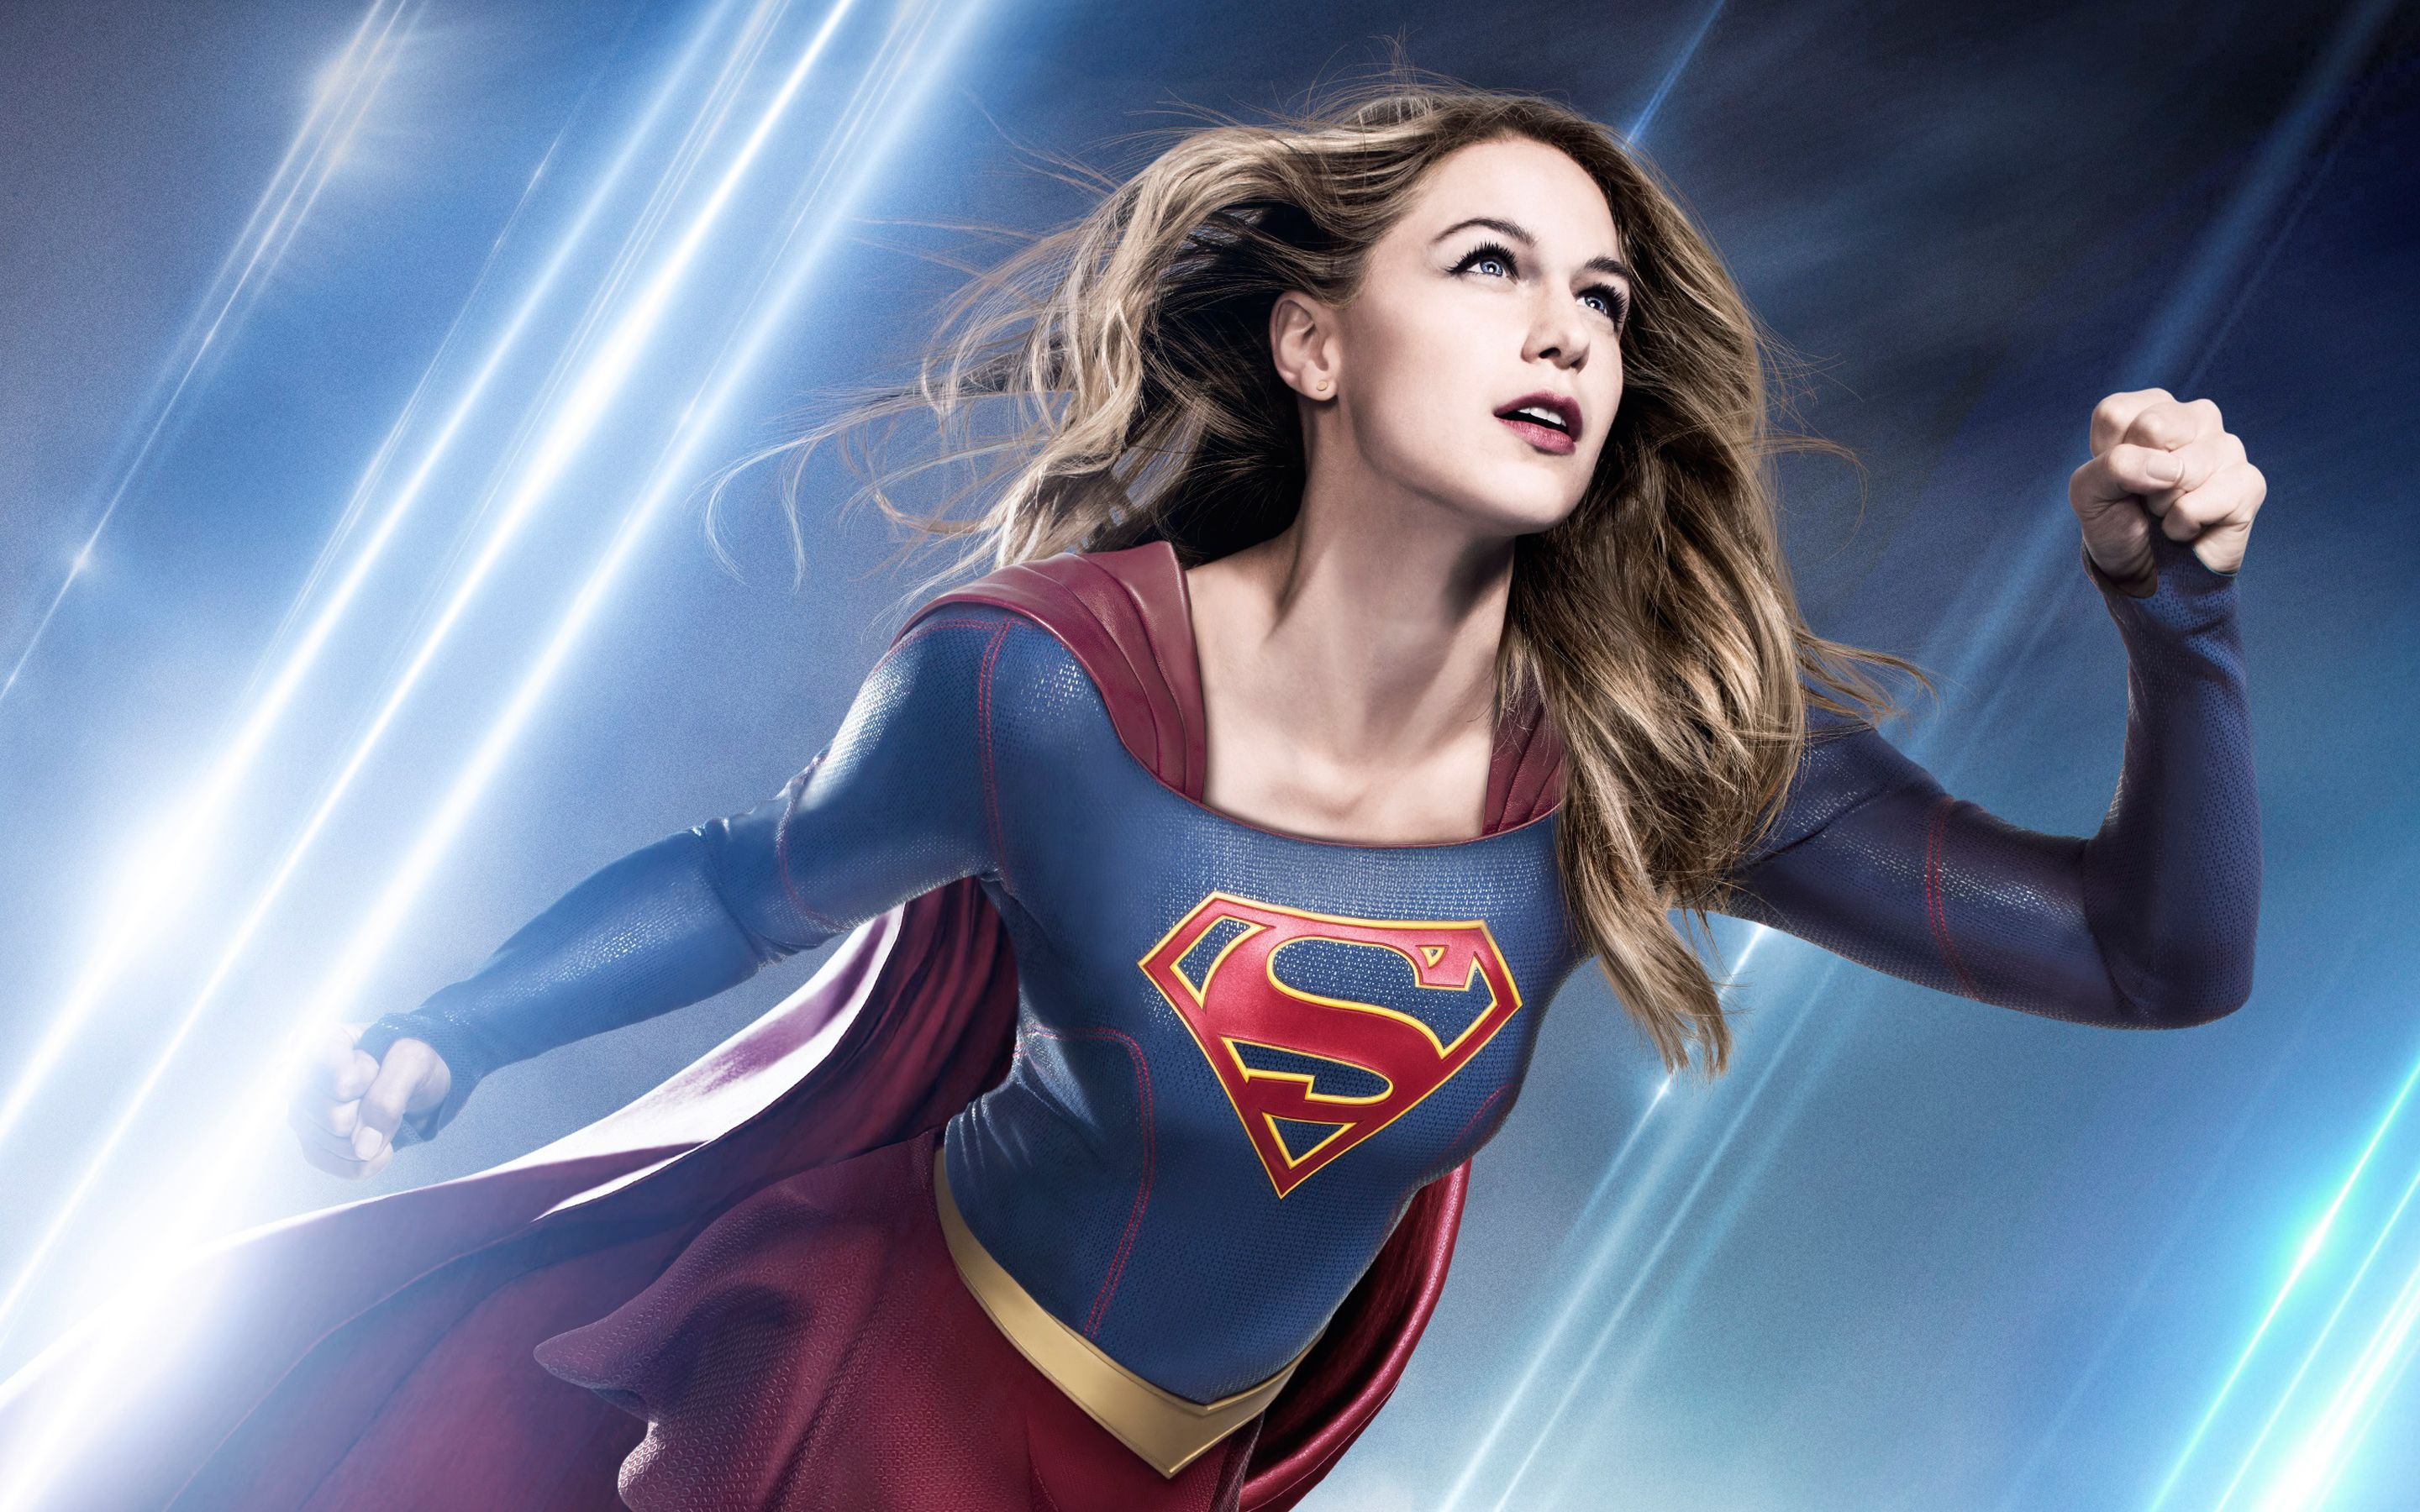 supergirl season 3 hd wallpaper | SUPERGIRL / CW shows in